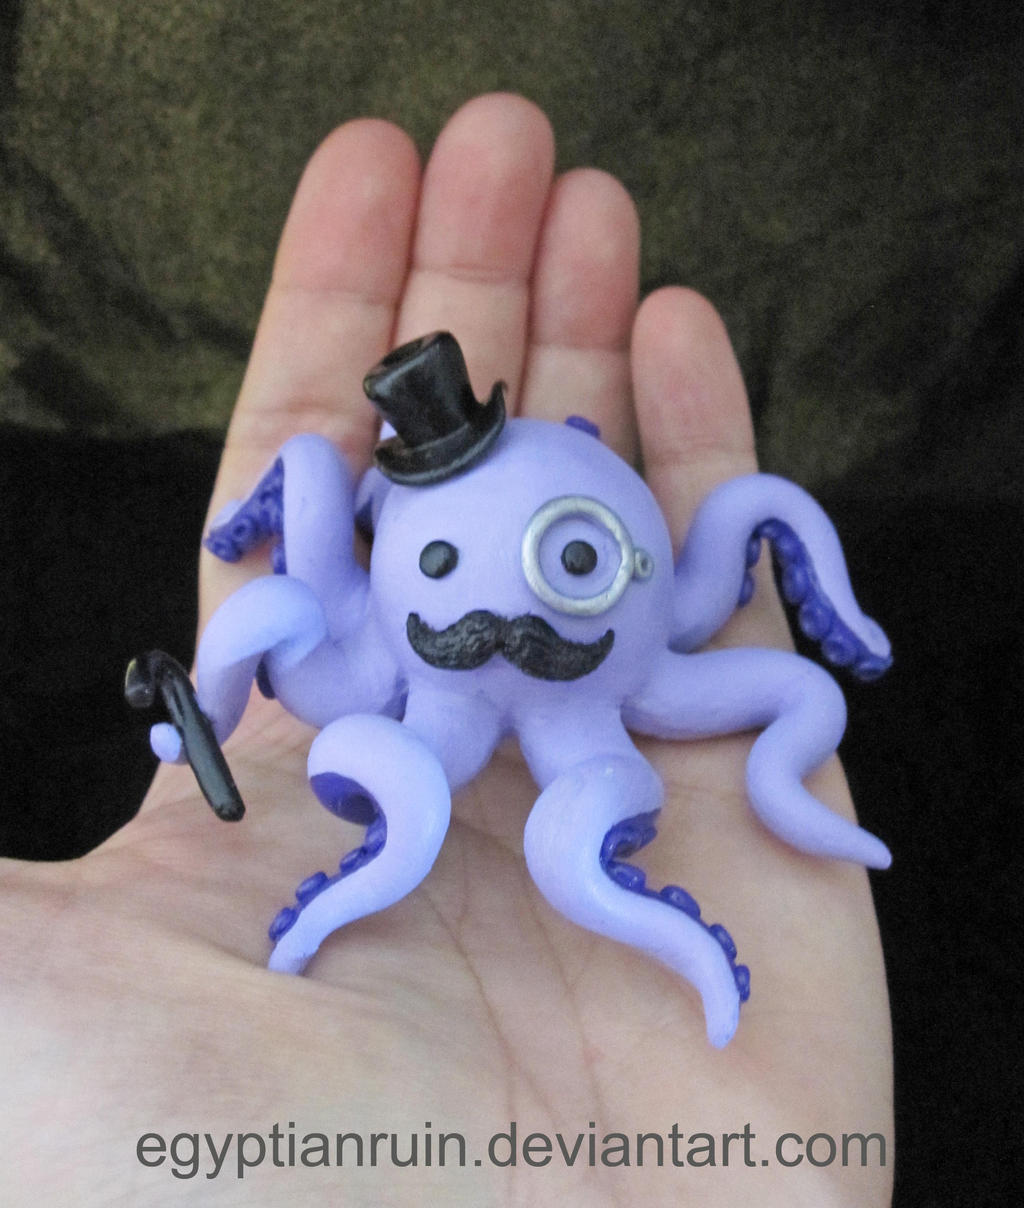 Gentleman Octopus Statue by egyptianruin